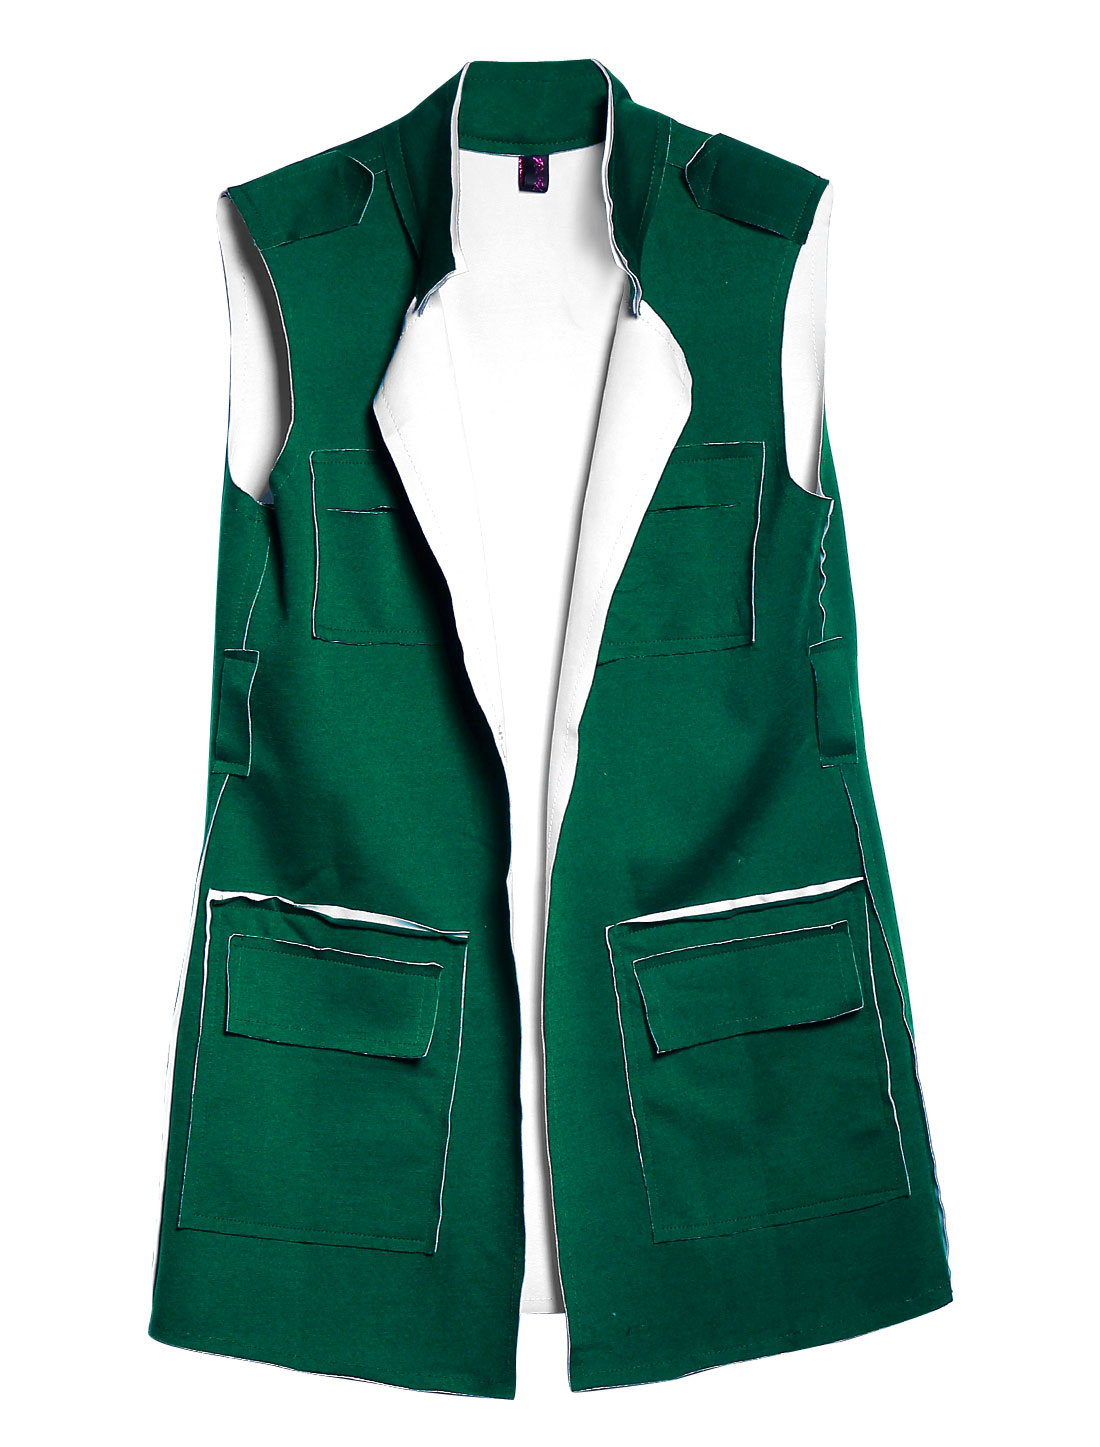 Women Stand Collar Front Opening Sleeveless Leisure Long Vest Dark Green XS